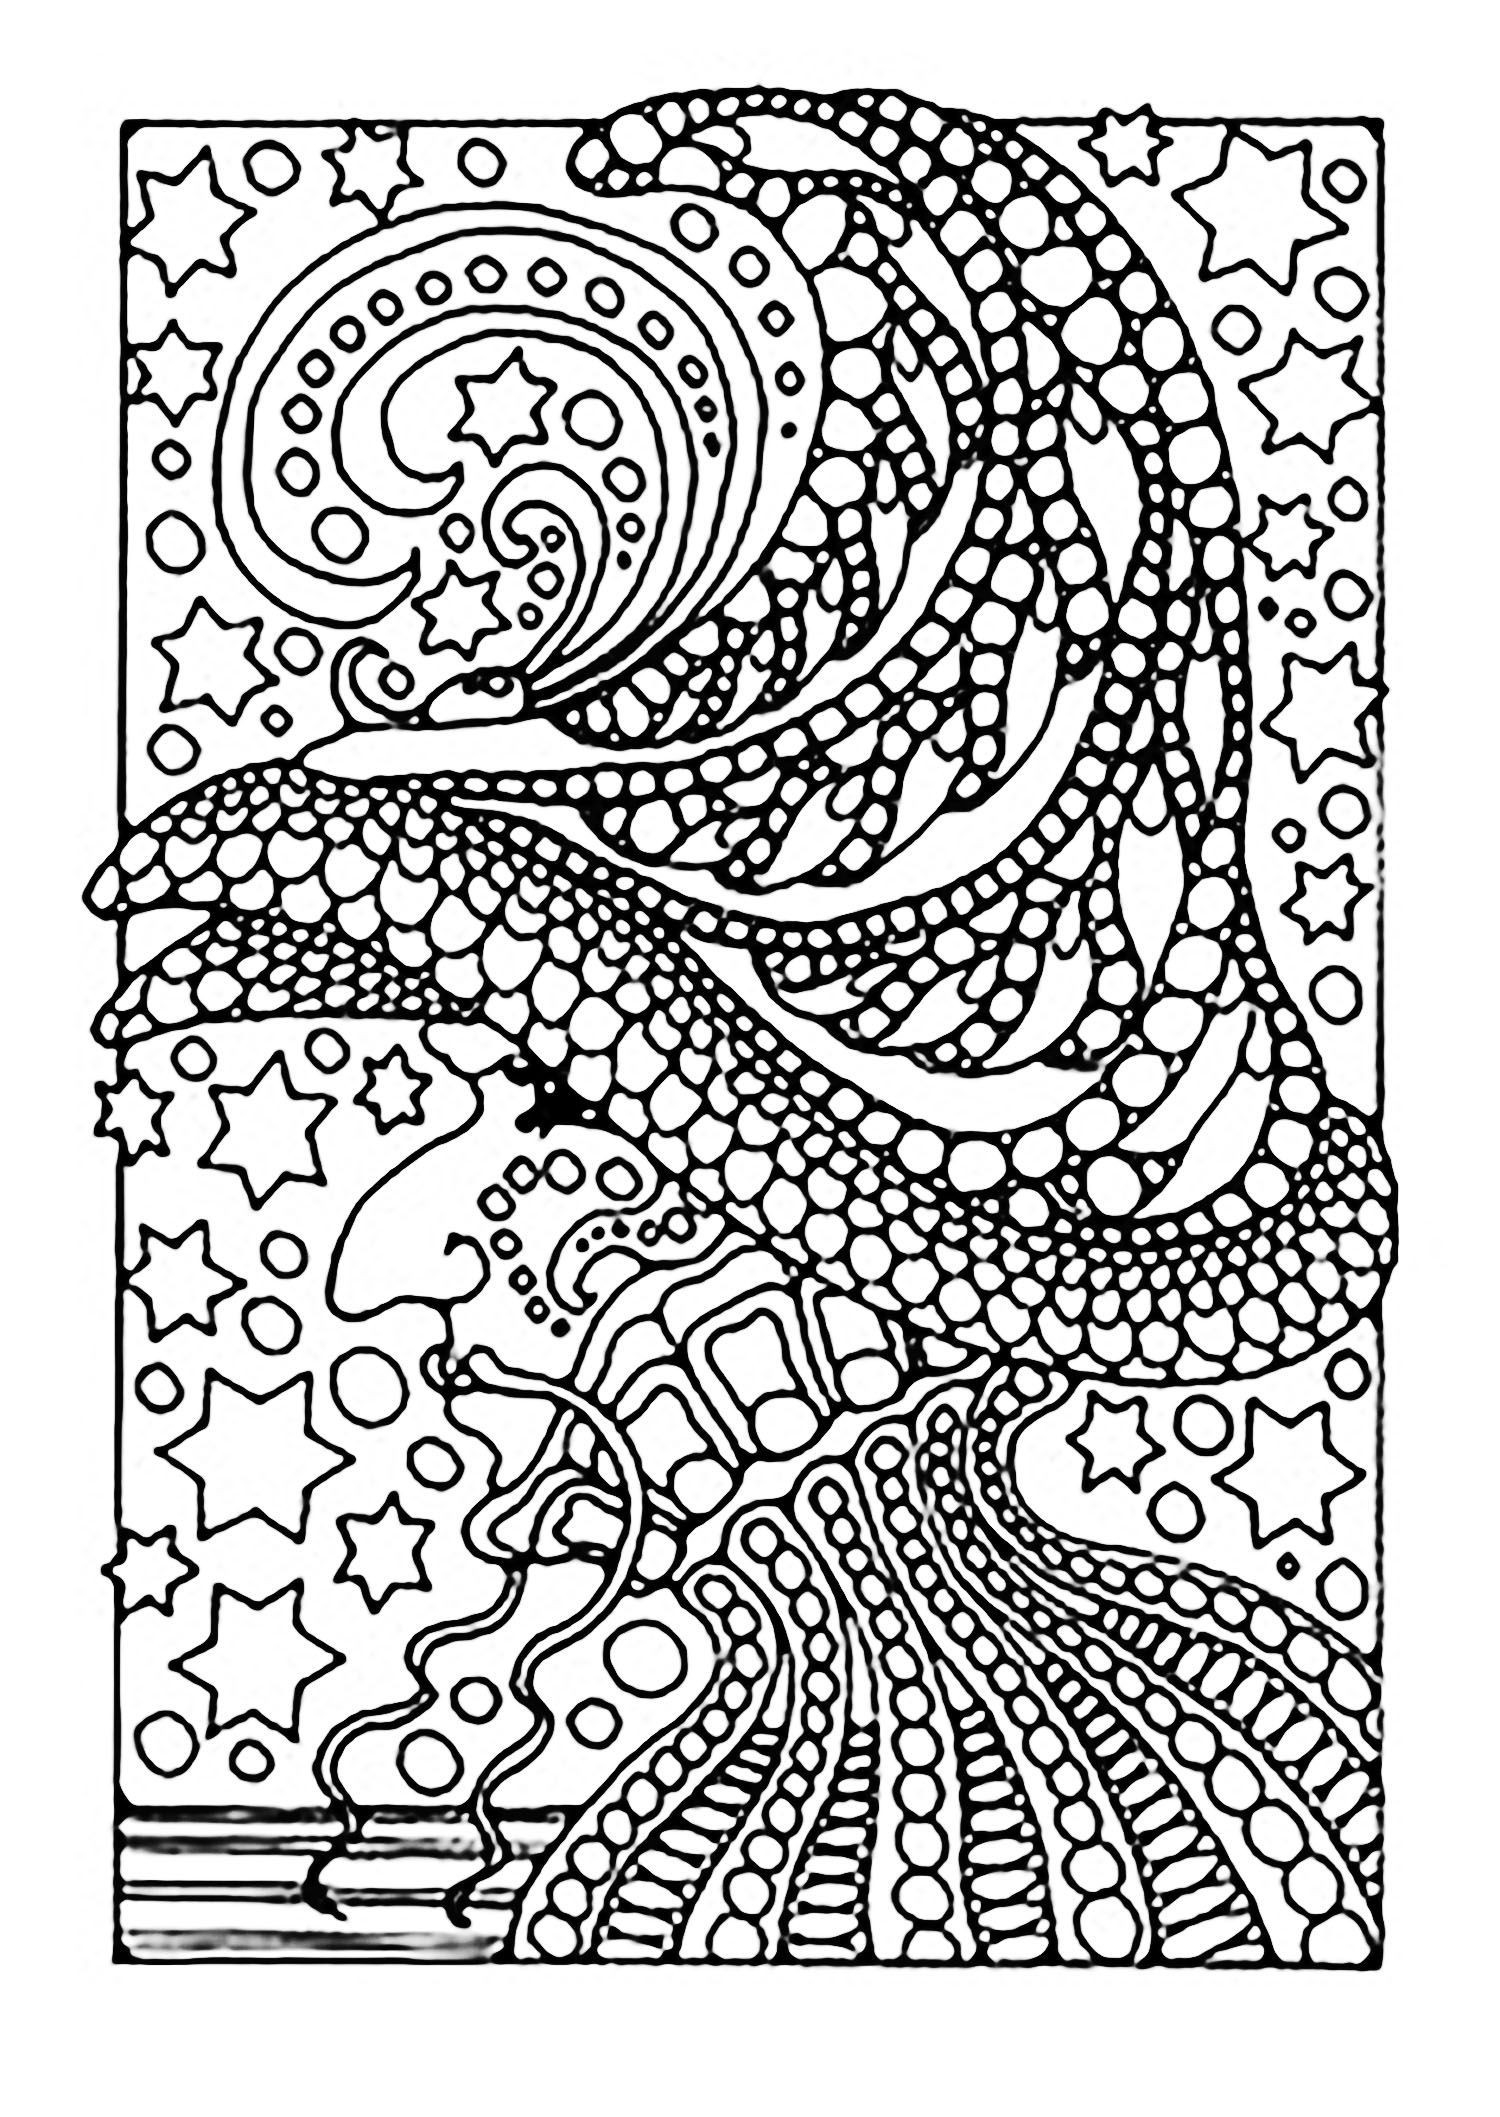 all about me coloring pages Collection-Family Coloring Pages Everything Coloring Pages Lovely Page Coloring 0d Free Coloring 5-a